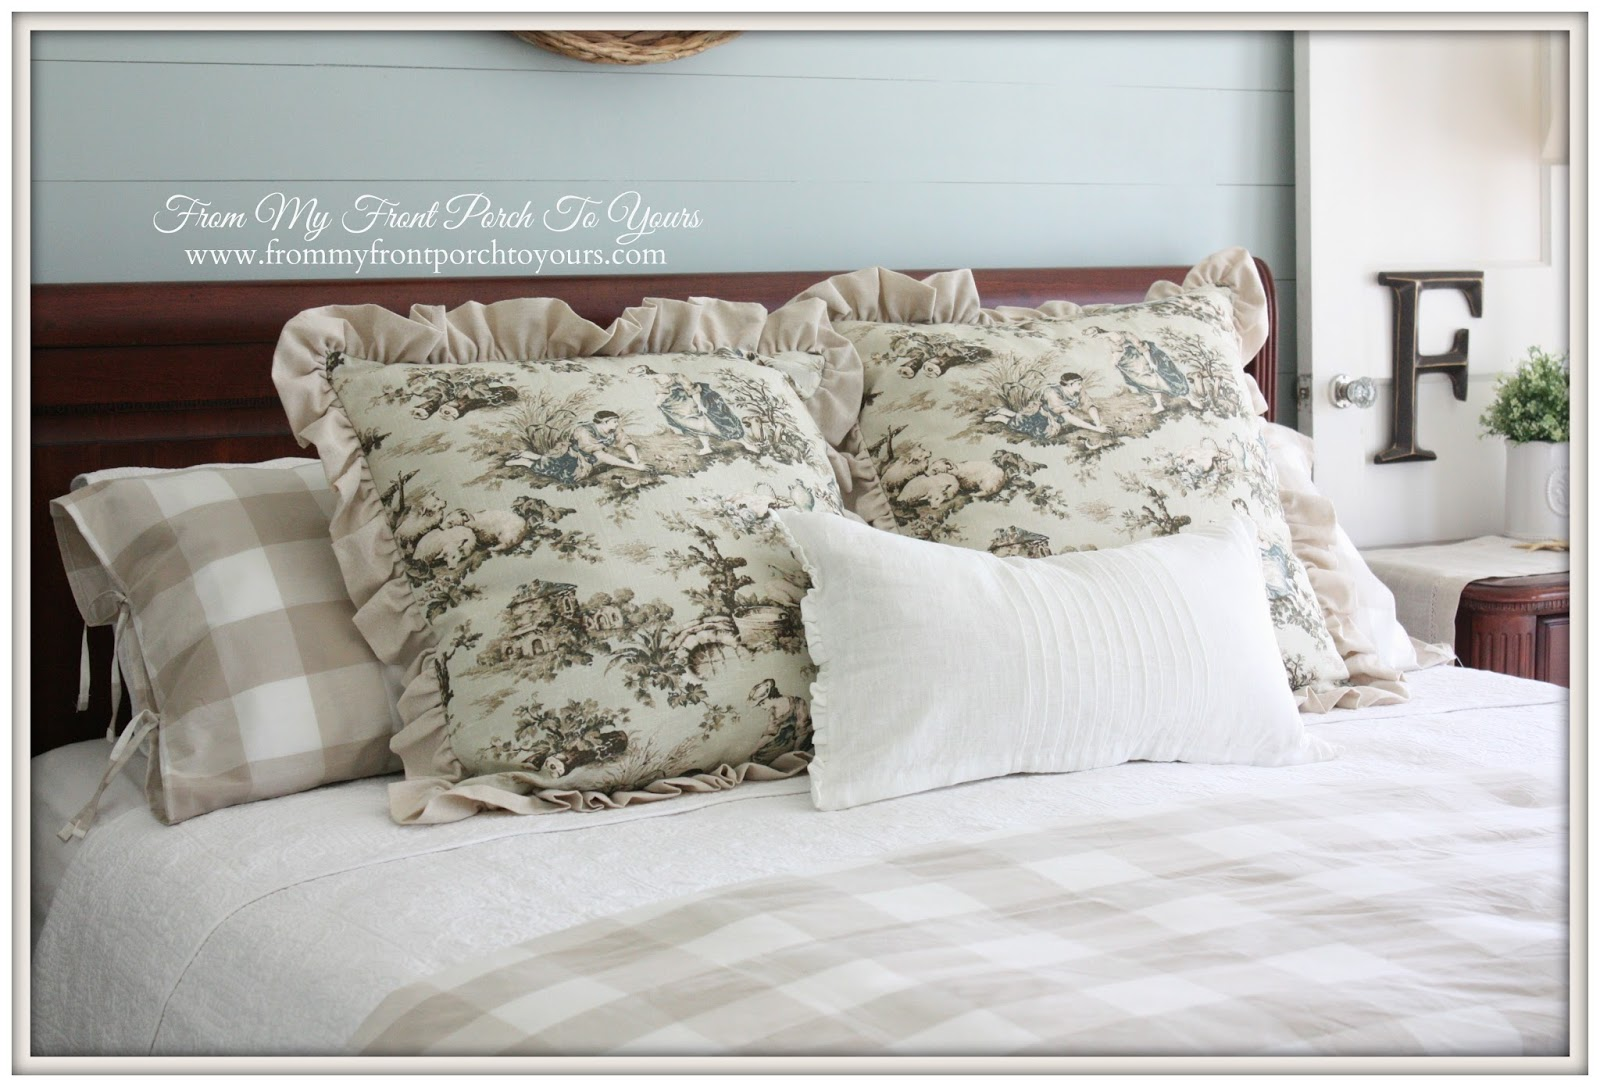 Toile Euro Shams-French Farmhouse Bedroom-How I Found My Style Sundays- From My Front Porch To Yours